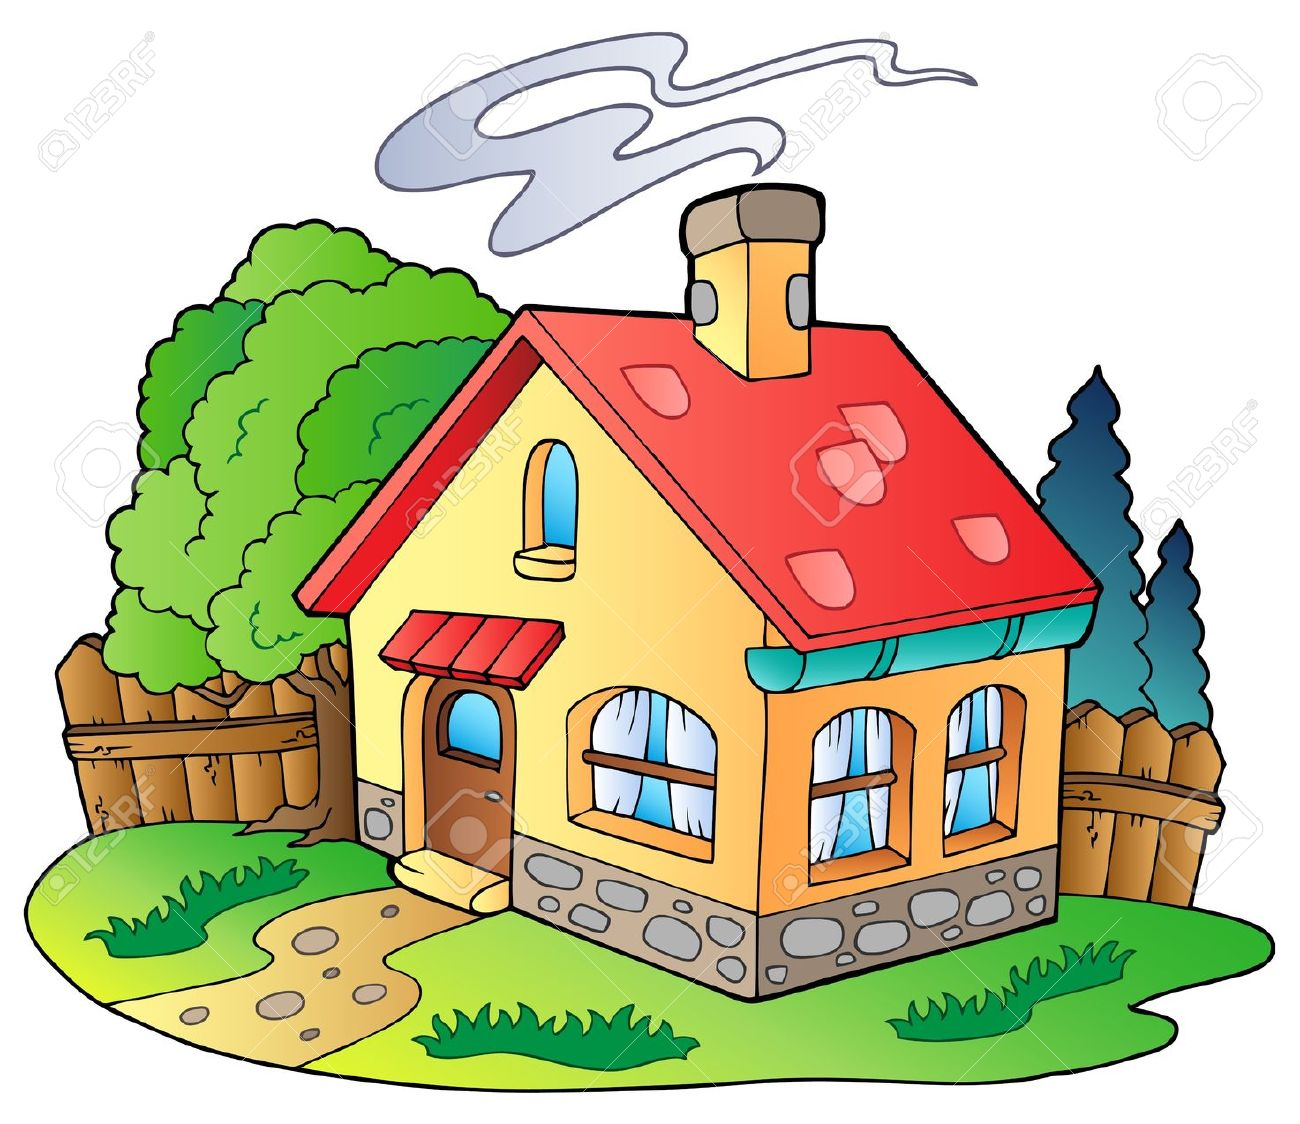 Small Family House Royalty Free Cliparts, Vectors, And Stock.